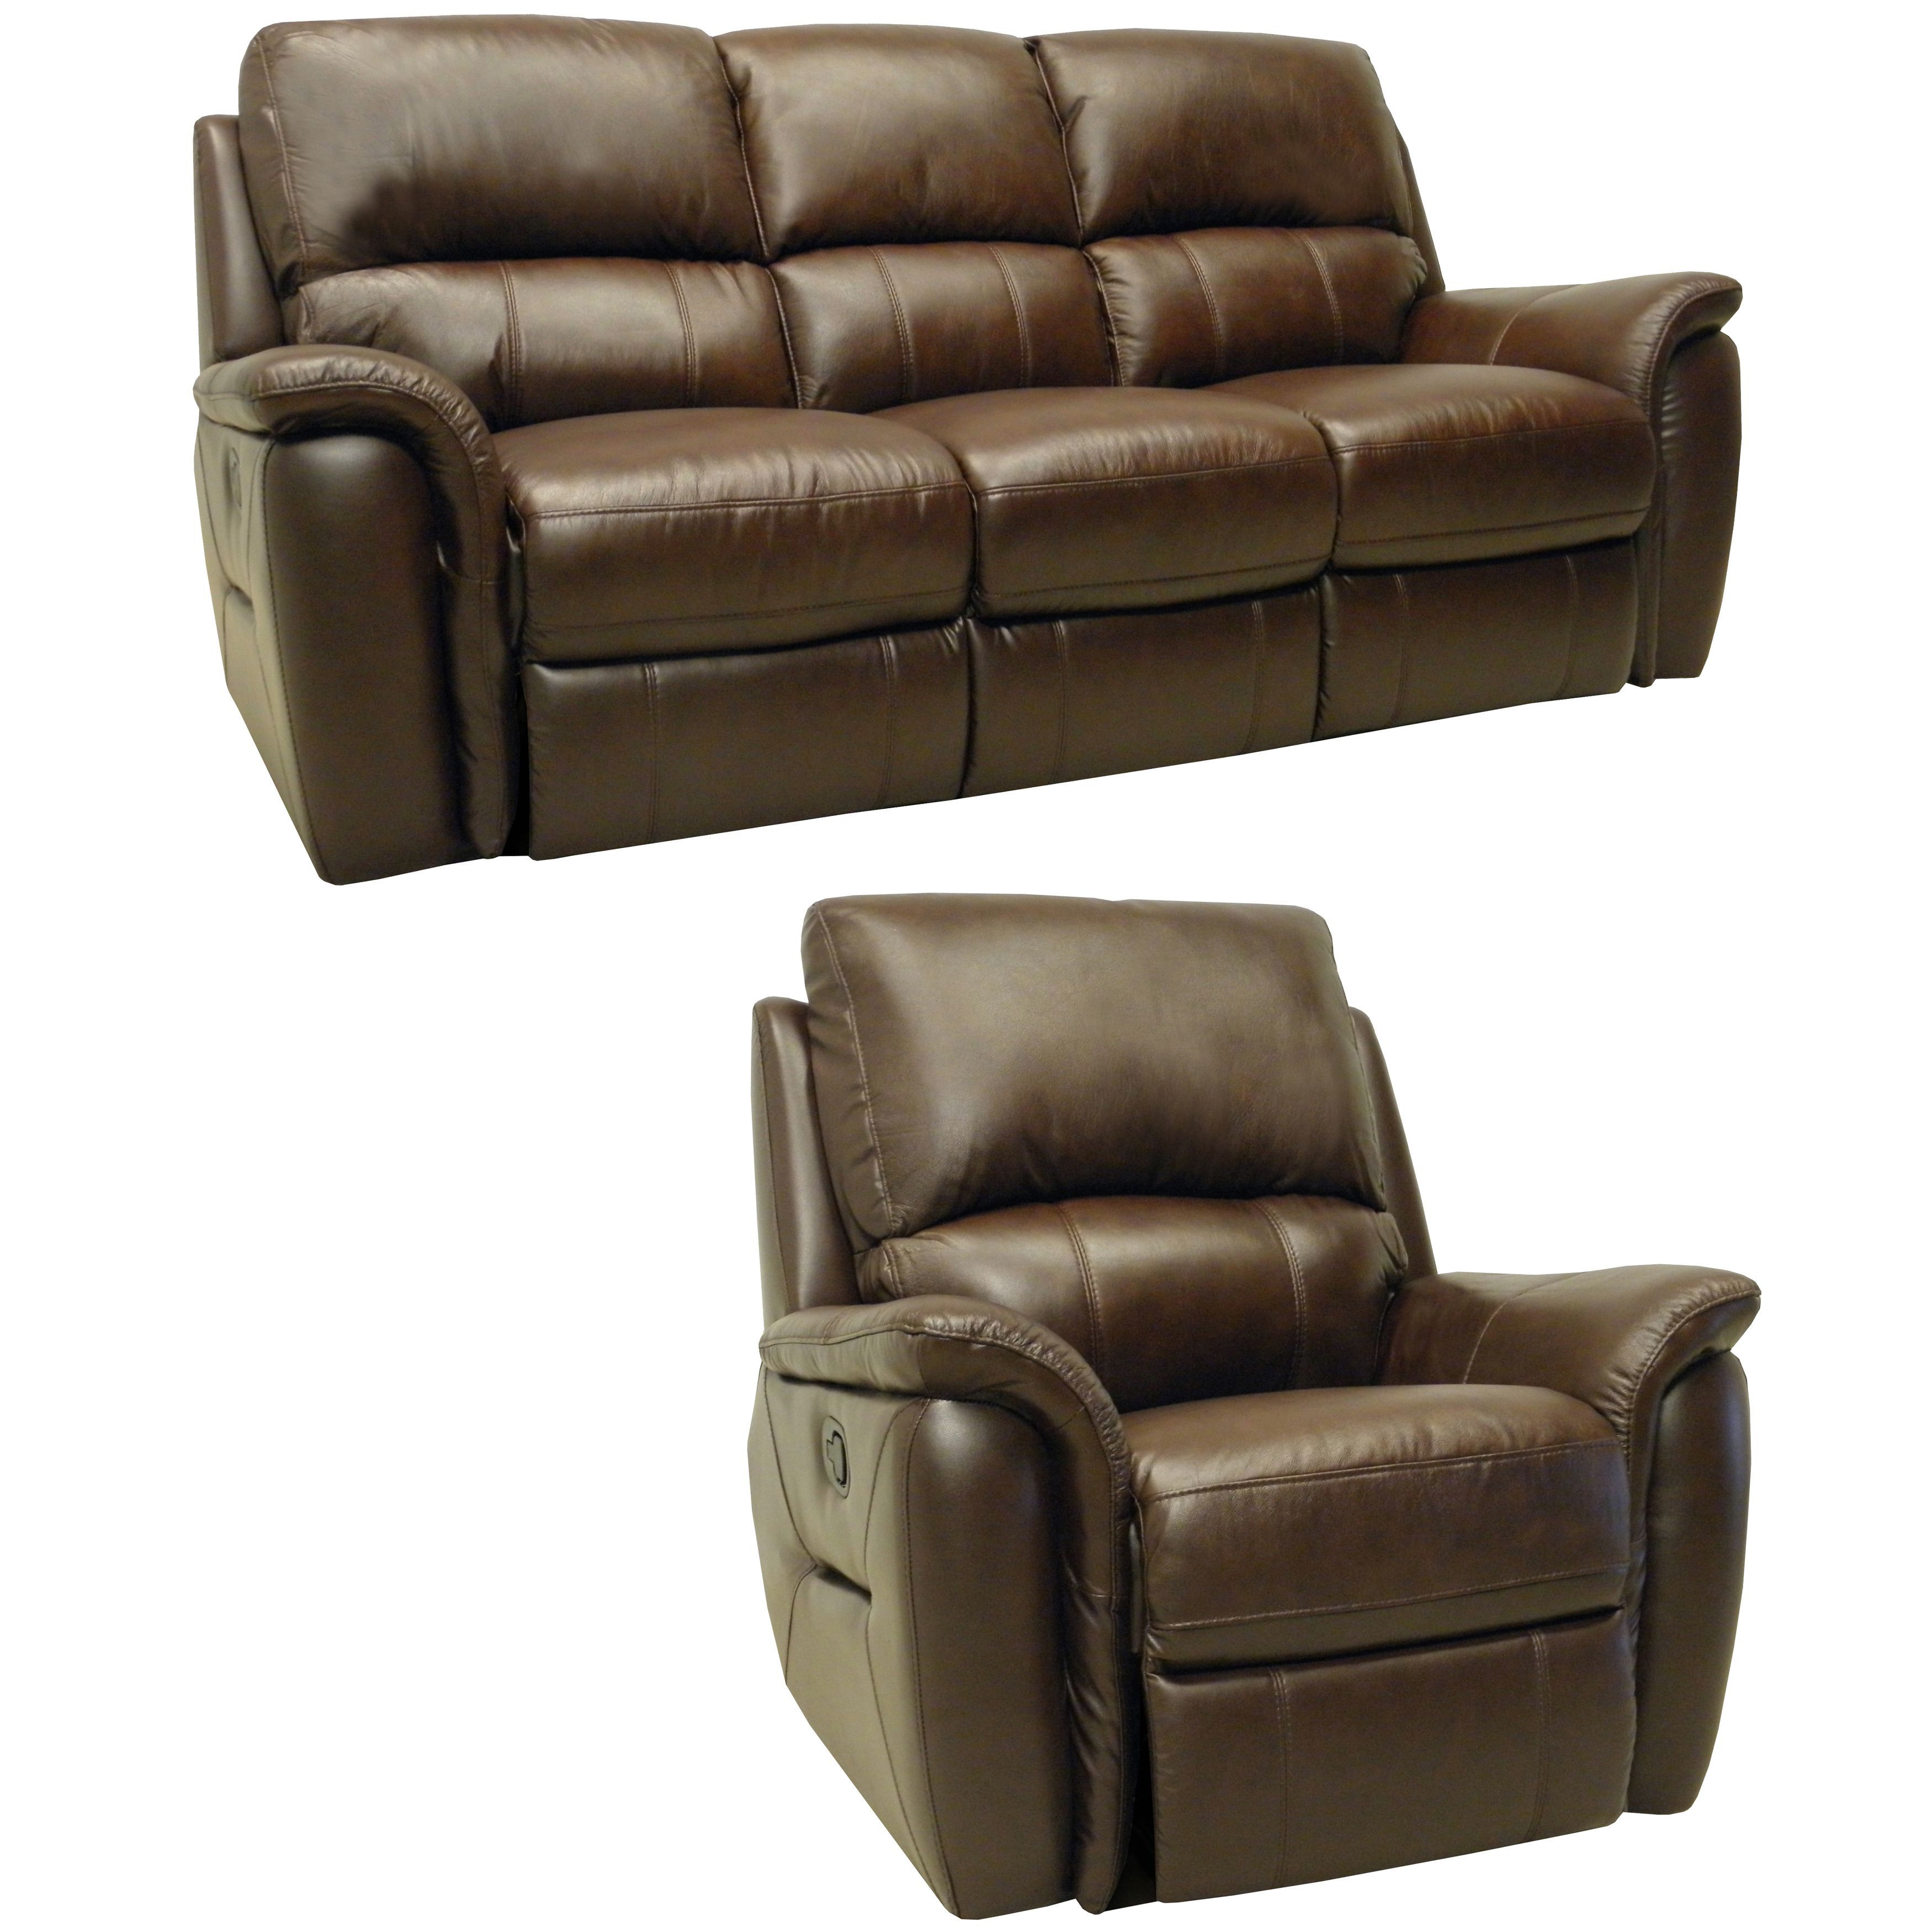 Sofa World Recliner Chairs Delivery Service The Porter Brown Italian Leather Reclining And Glider Chair Are Handcrafted Using Time Honored Old Techniques